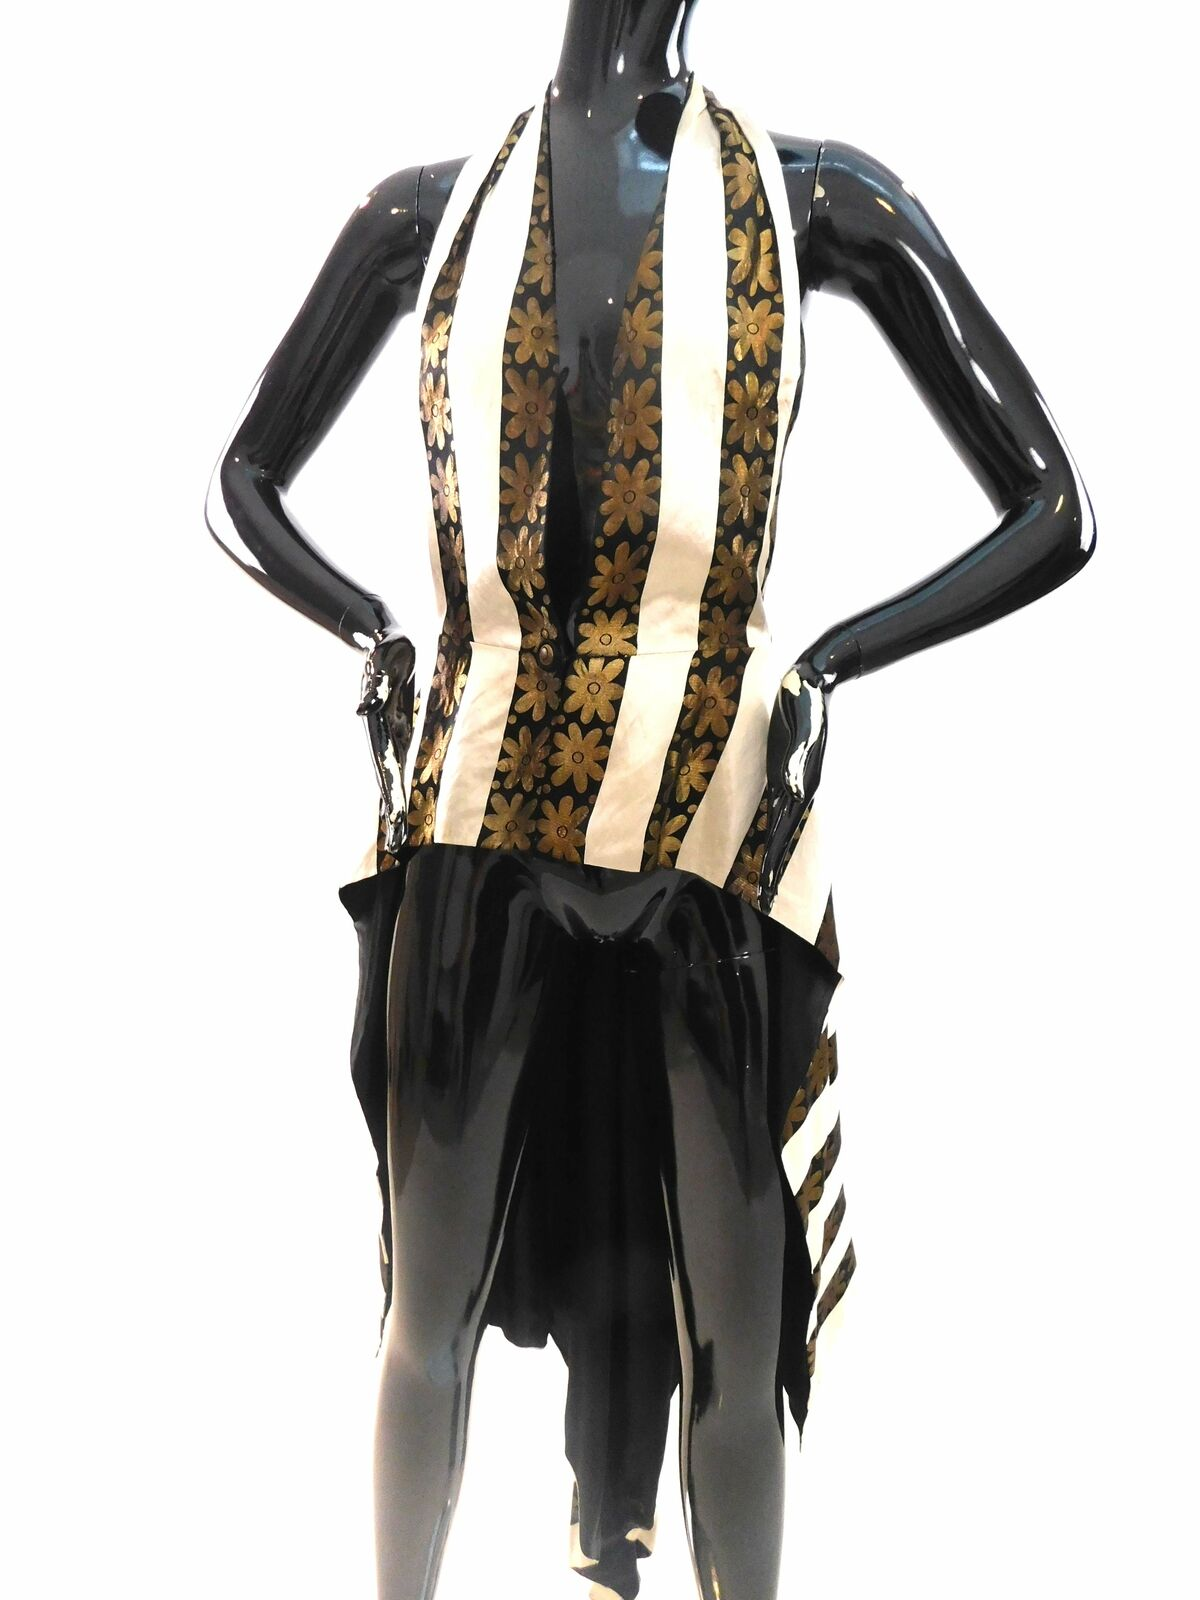 1920s Hollywood Glam couture waistcoat